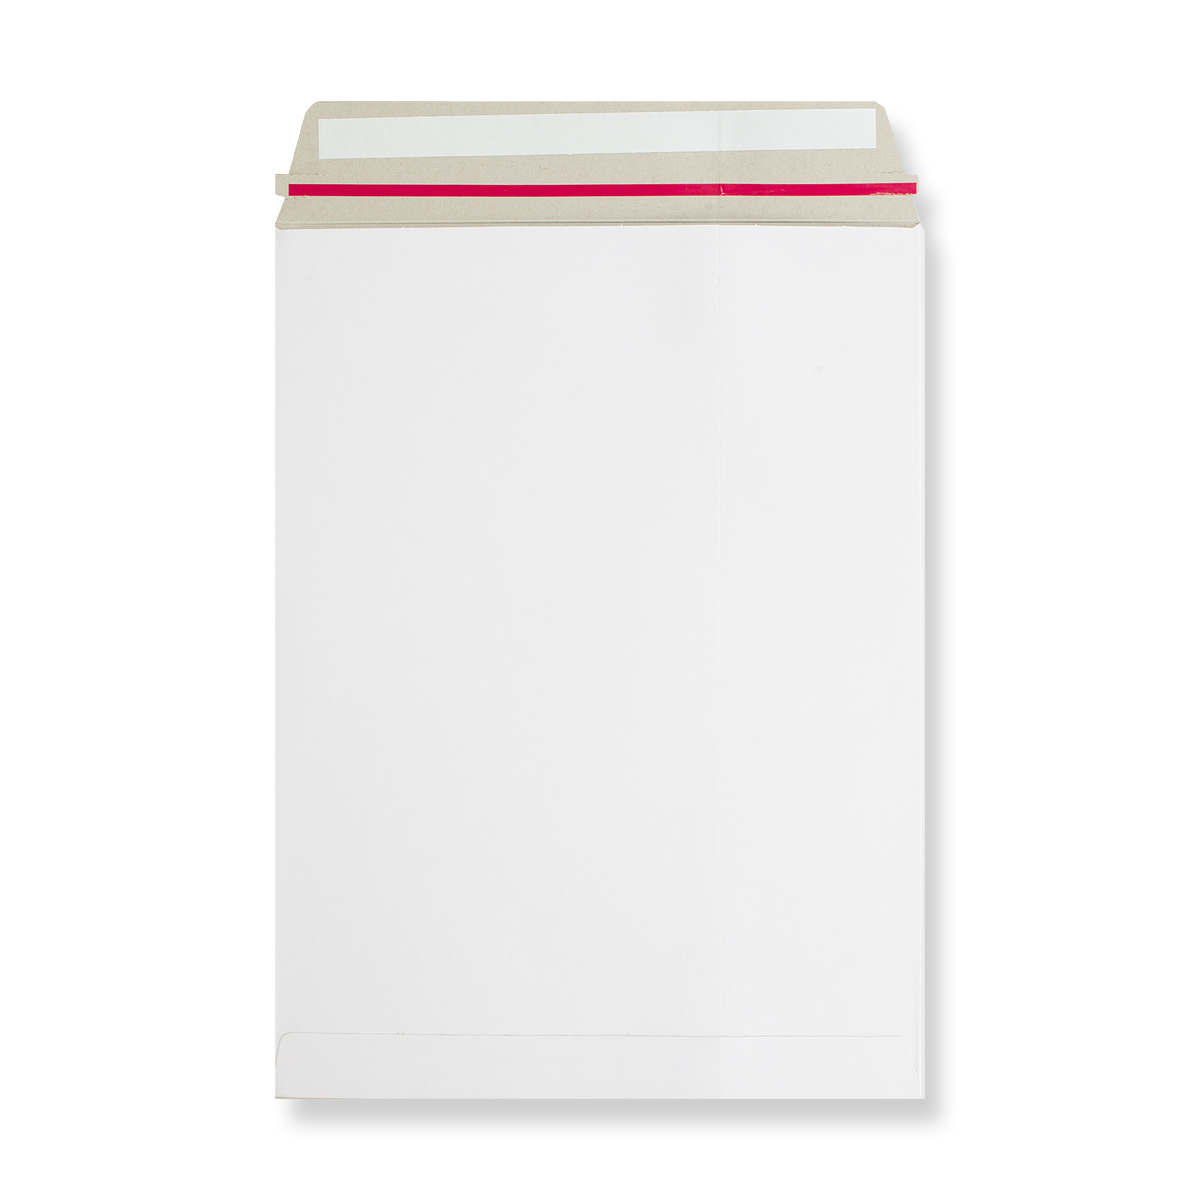 330 x 248mm WHITE ALL BOARD ENVELOPES